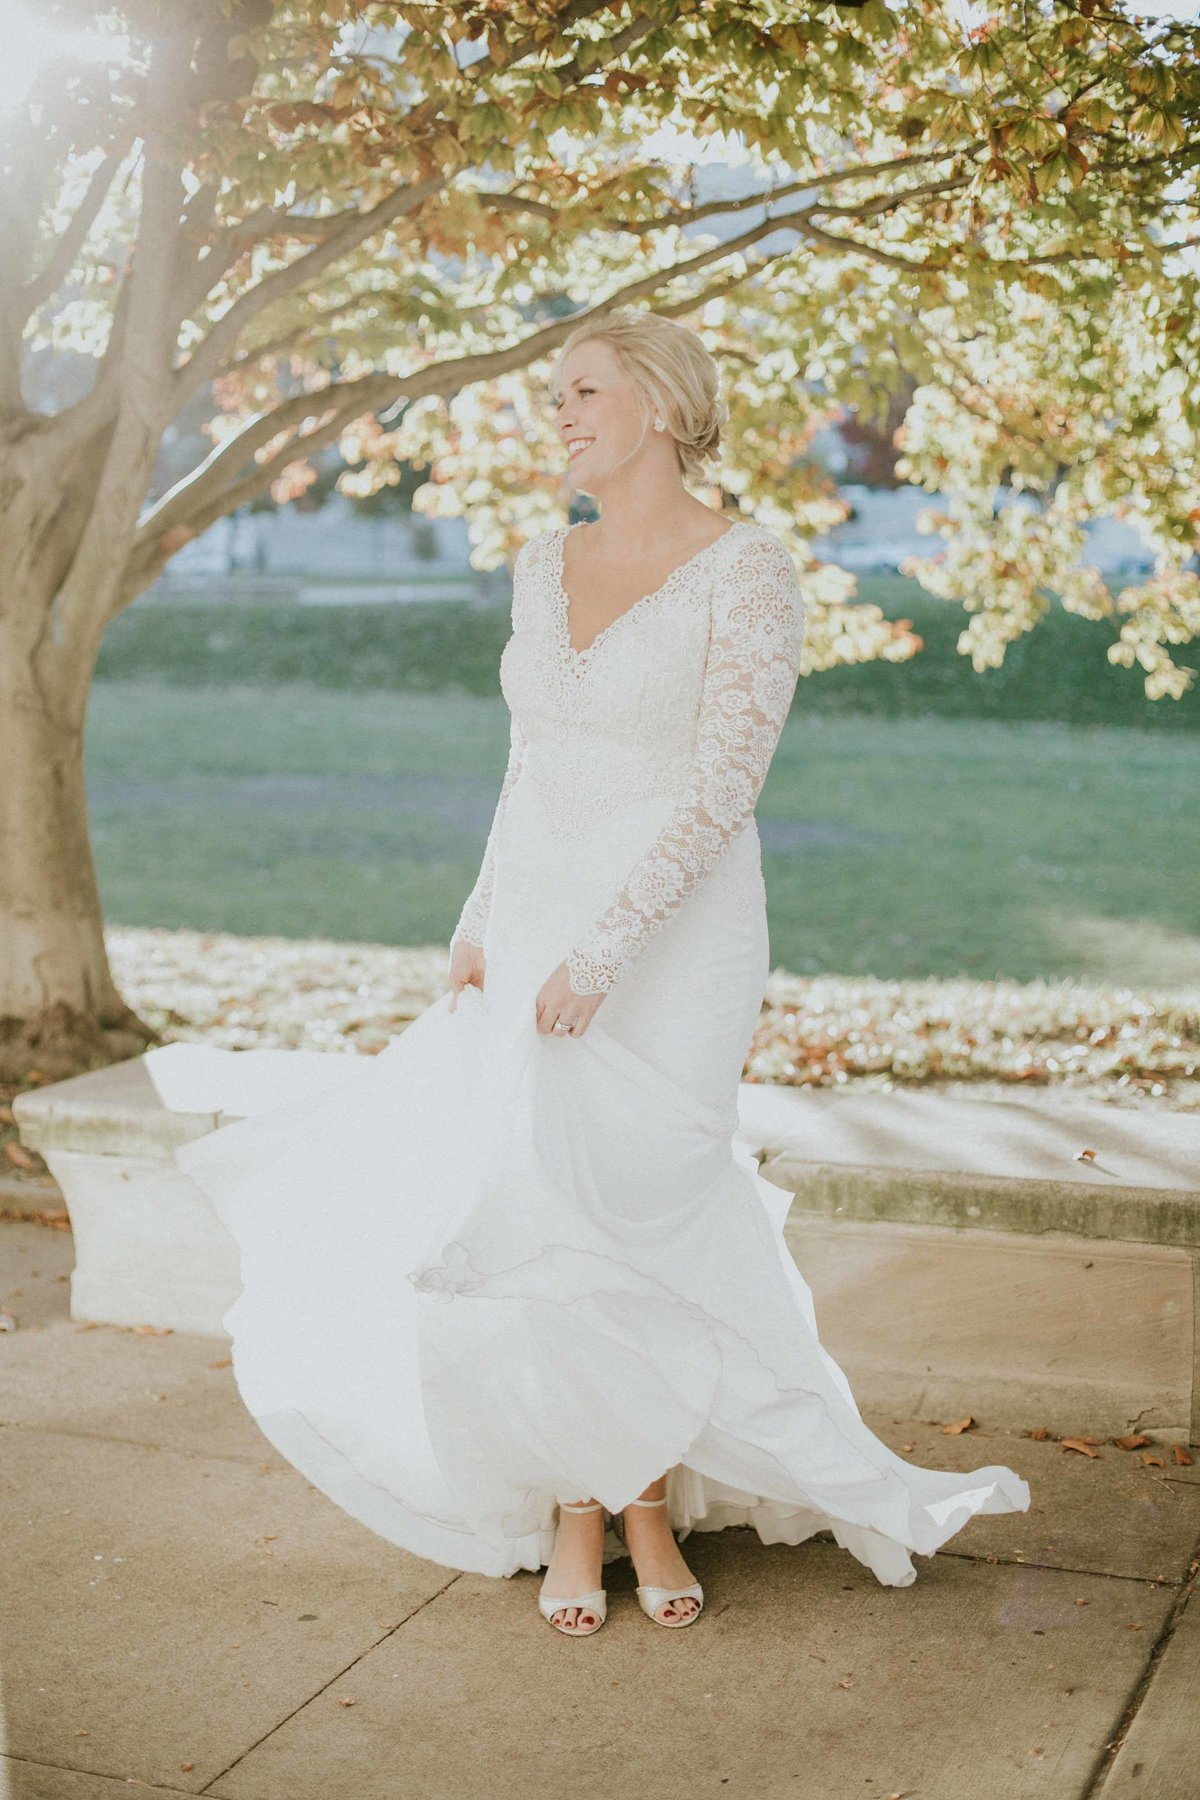 Bride twirls dress in downtown Indianapolis wedding